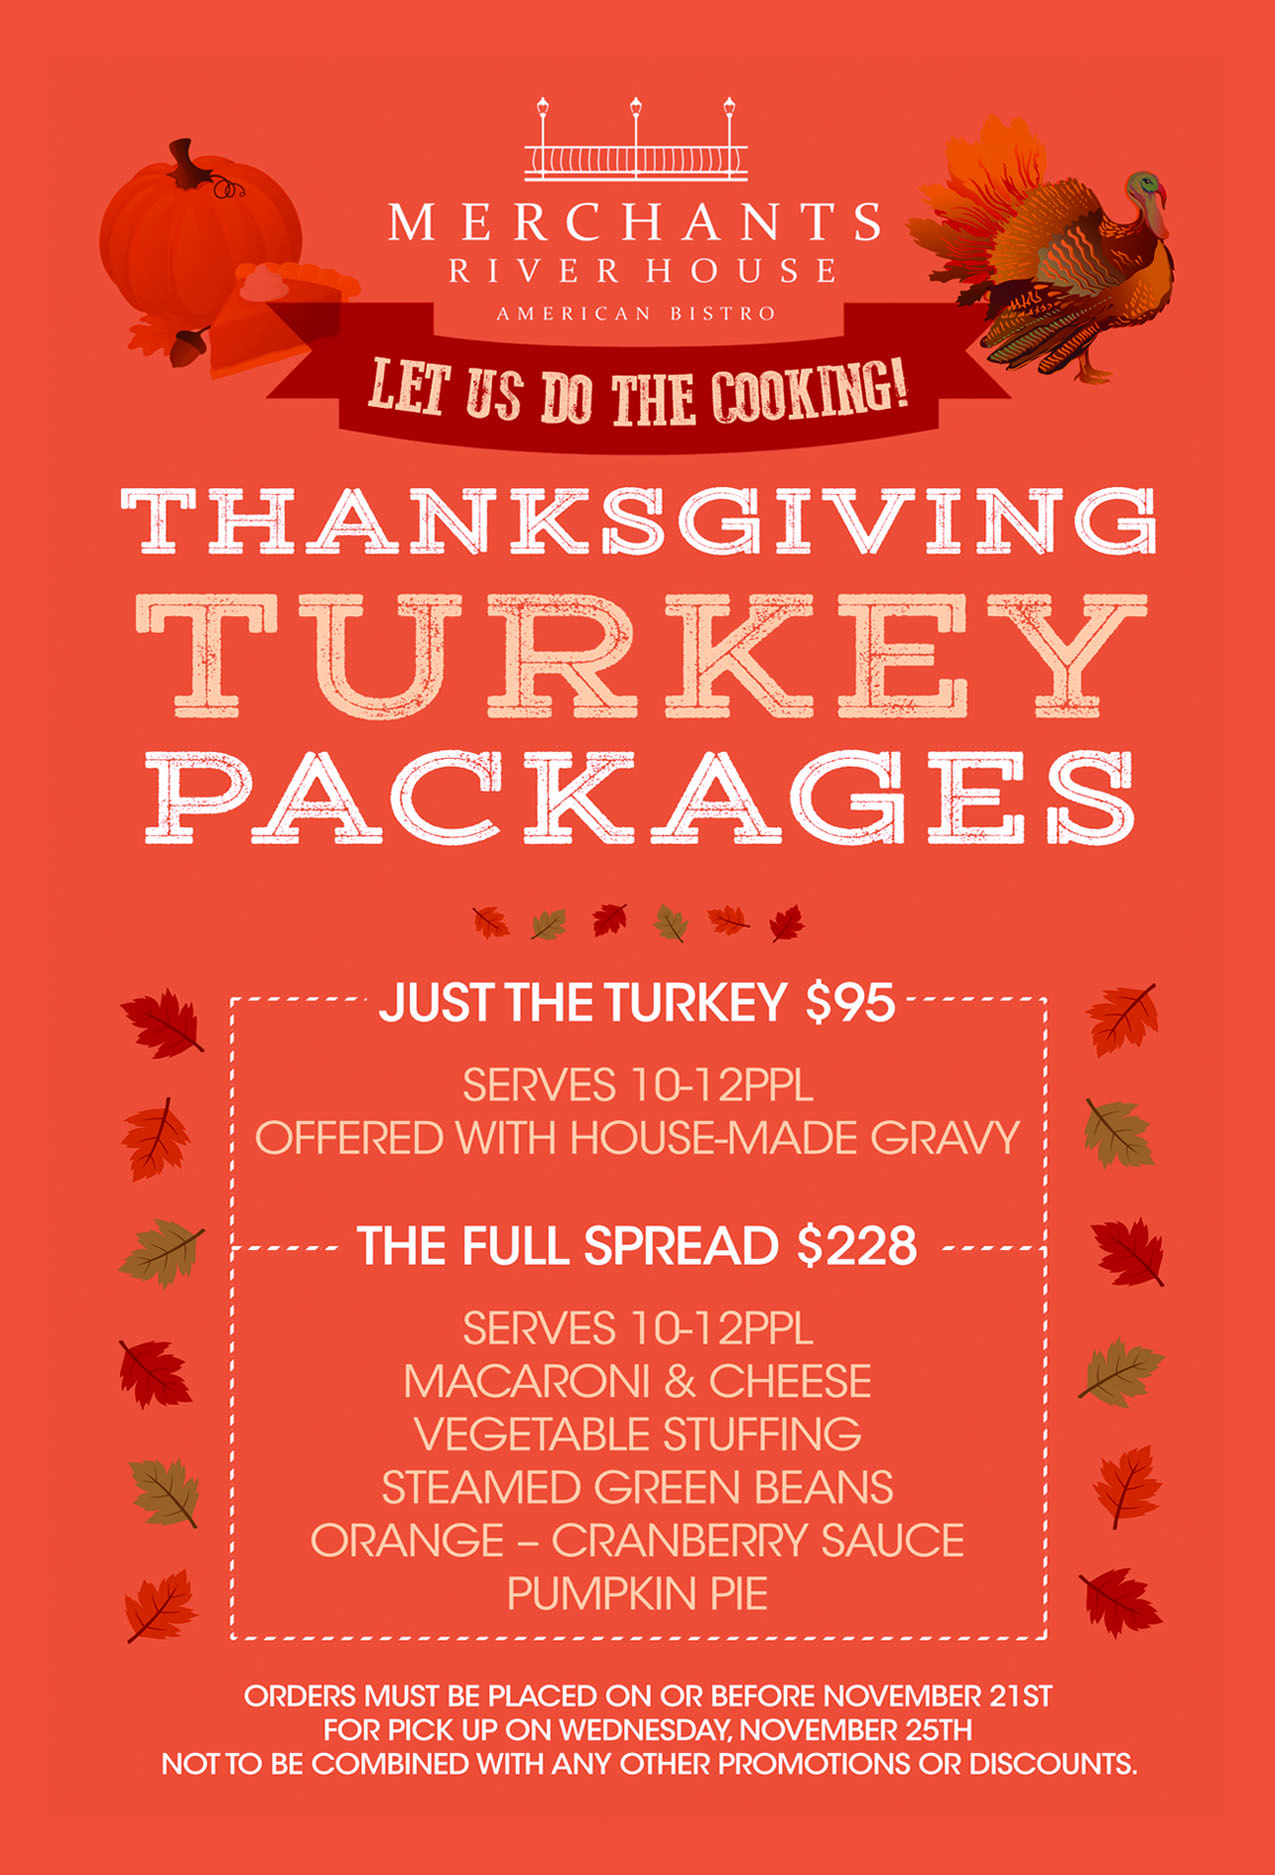 Turkey Package at Merchants River House! Place your order today!  #thanksgiving #merchantsriverhouse